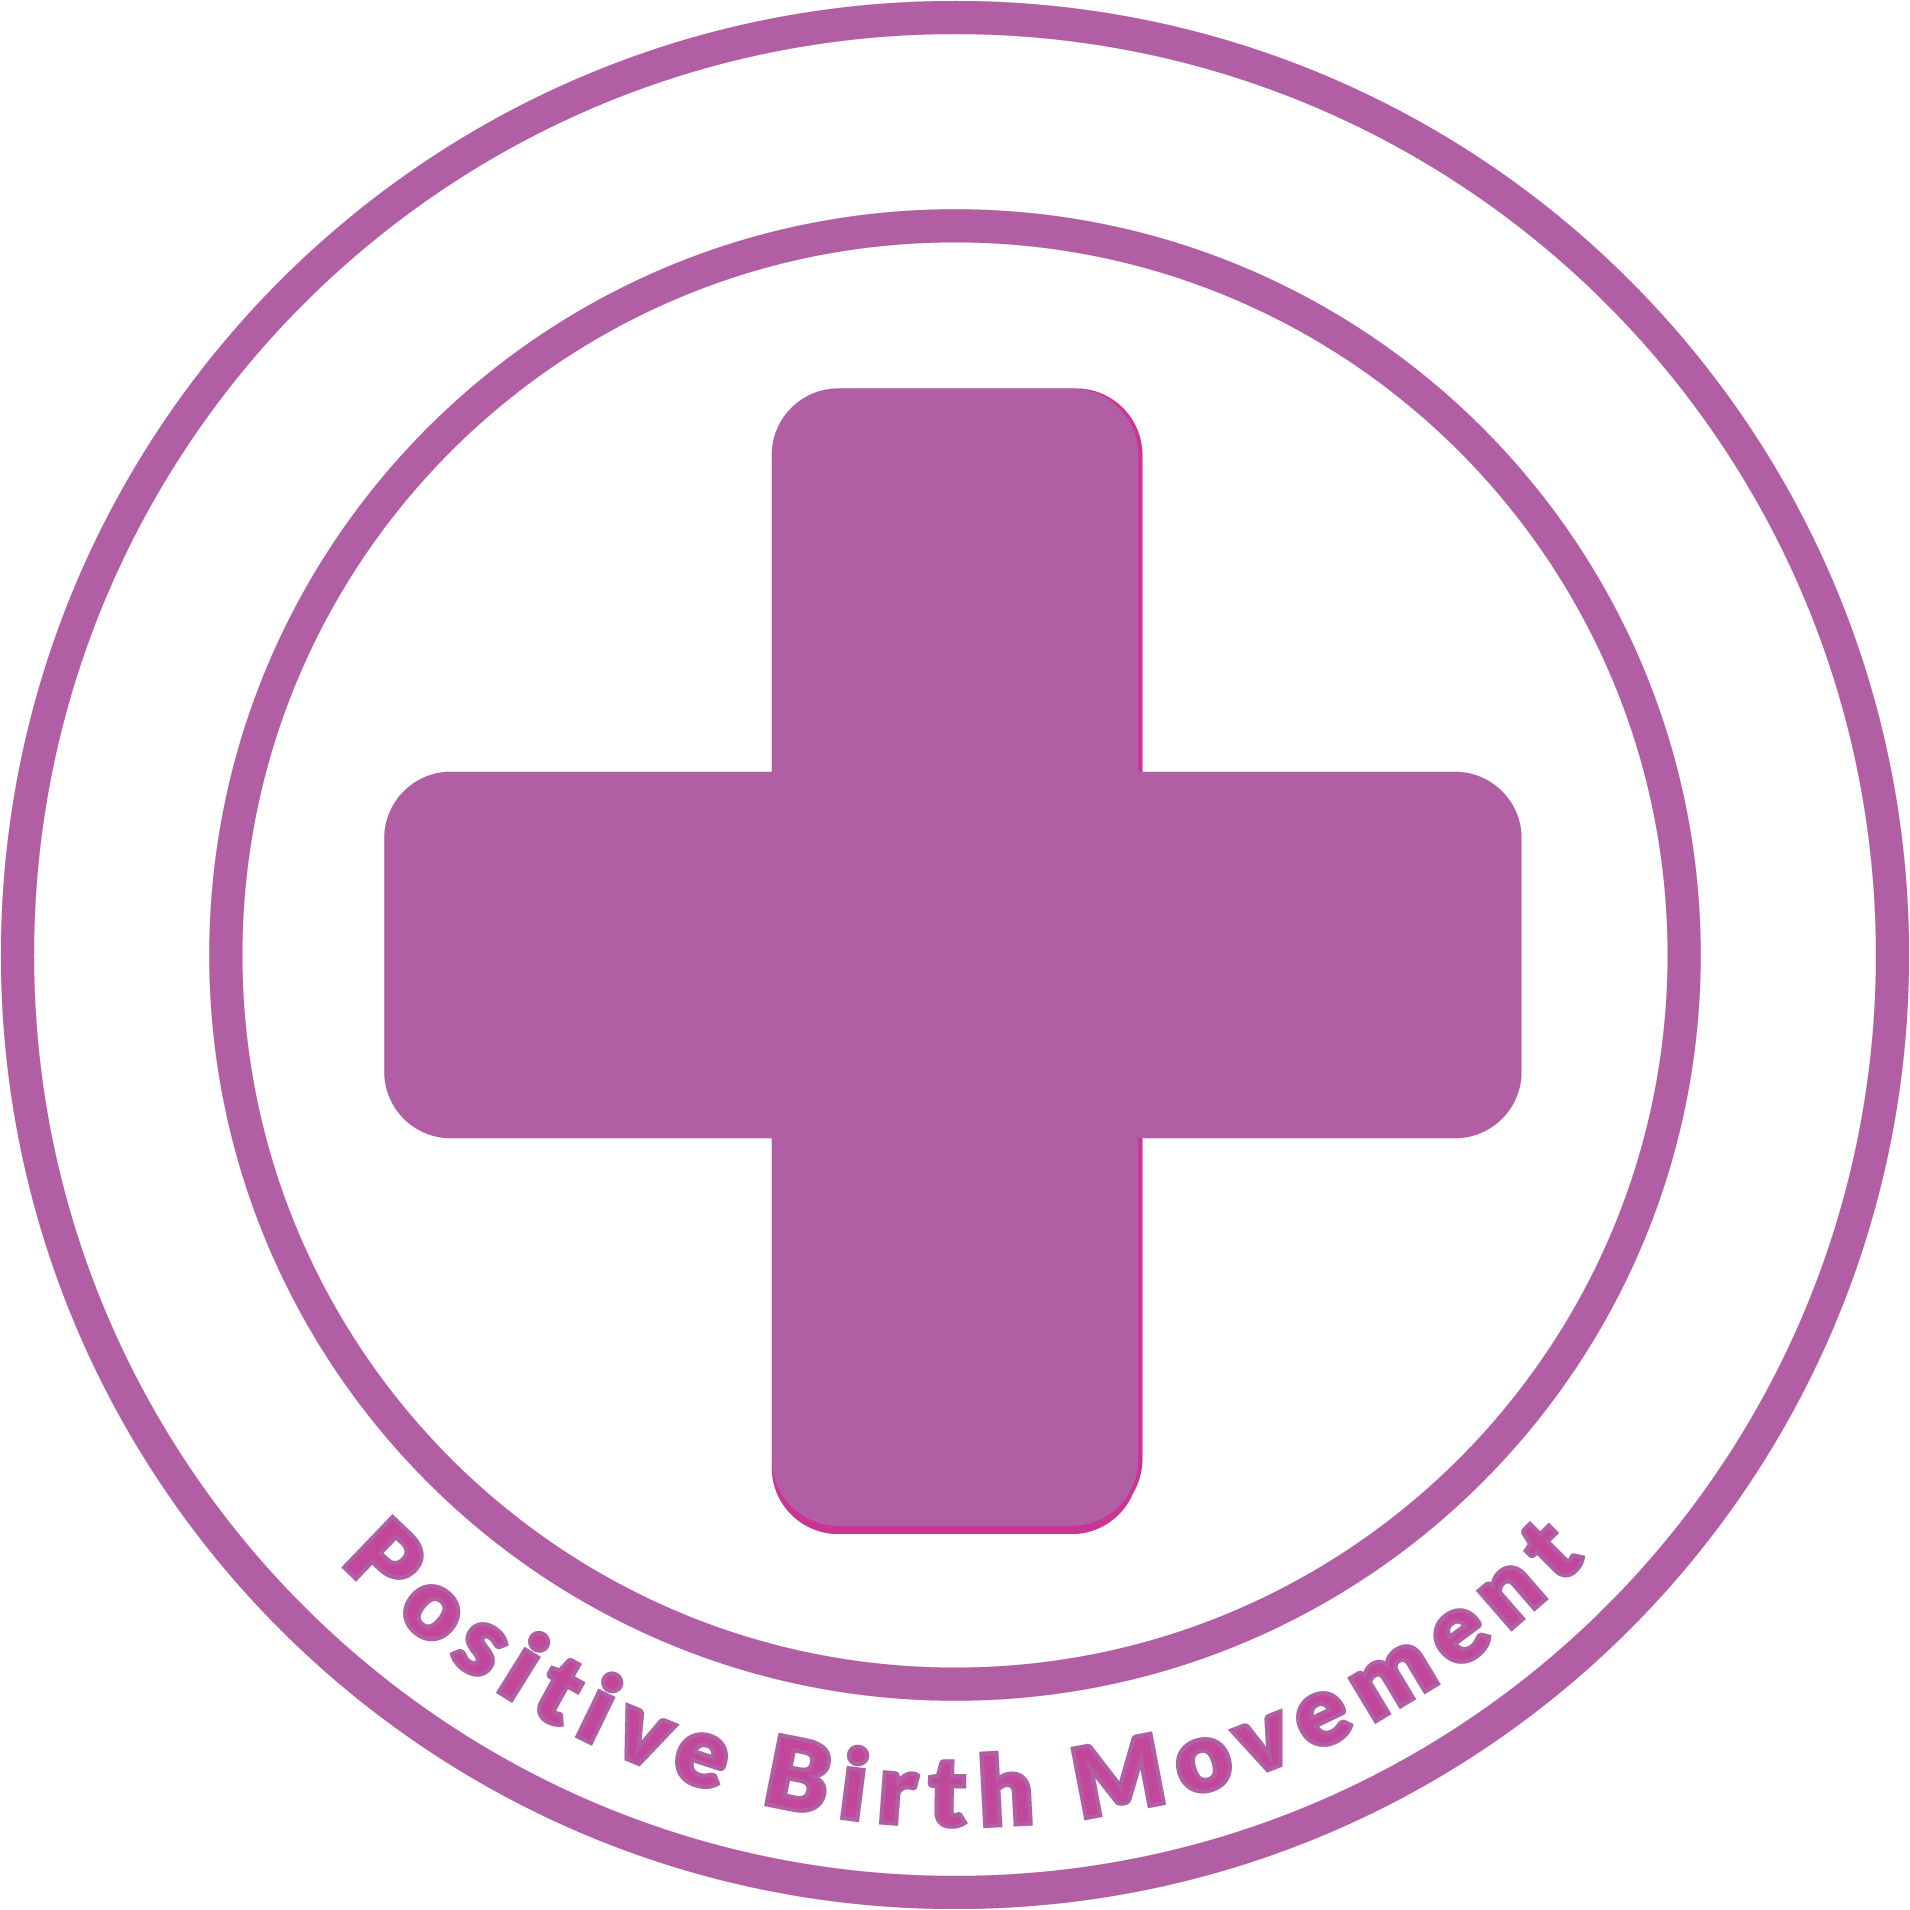 Positive Birth Movement.png